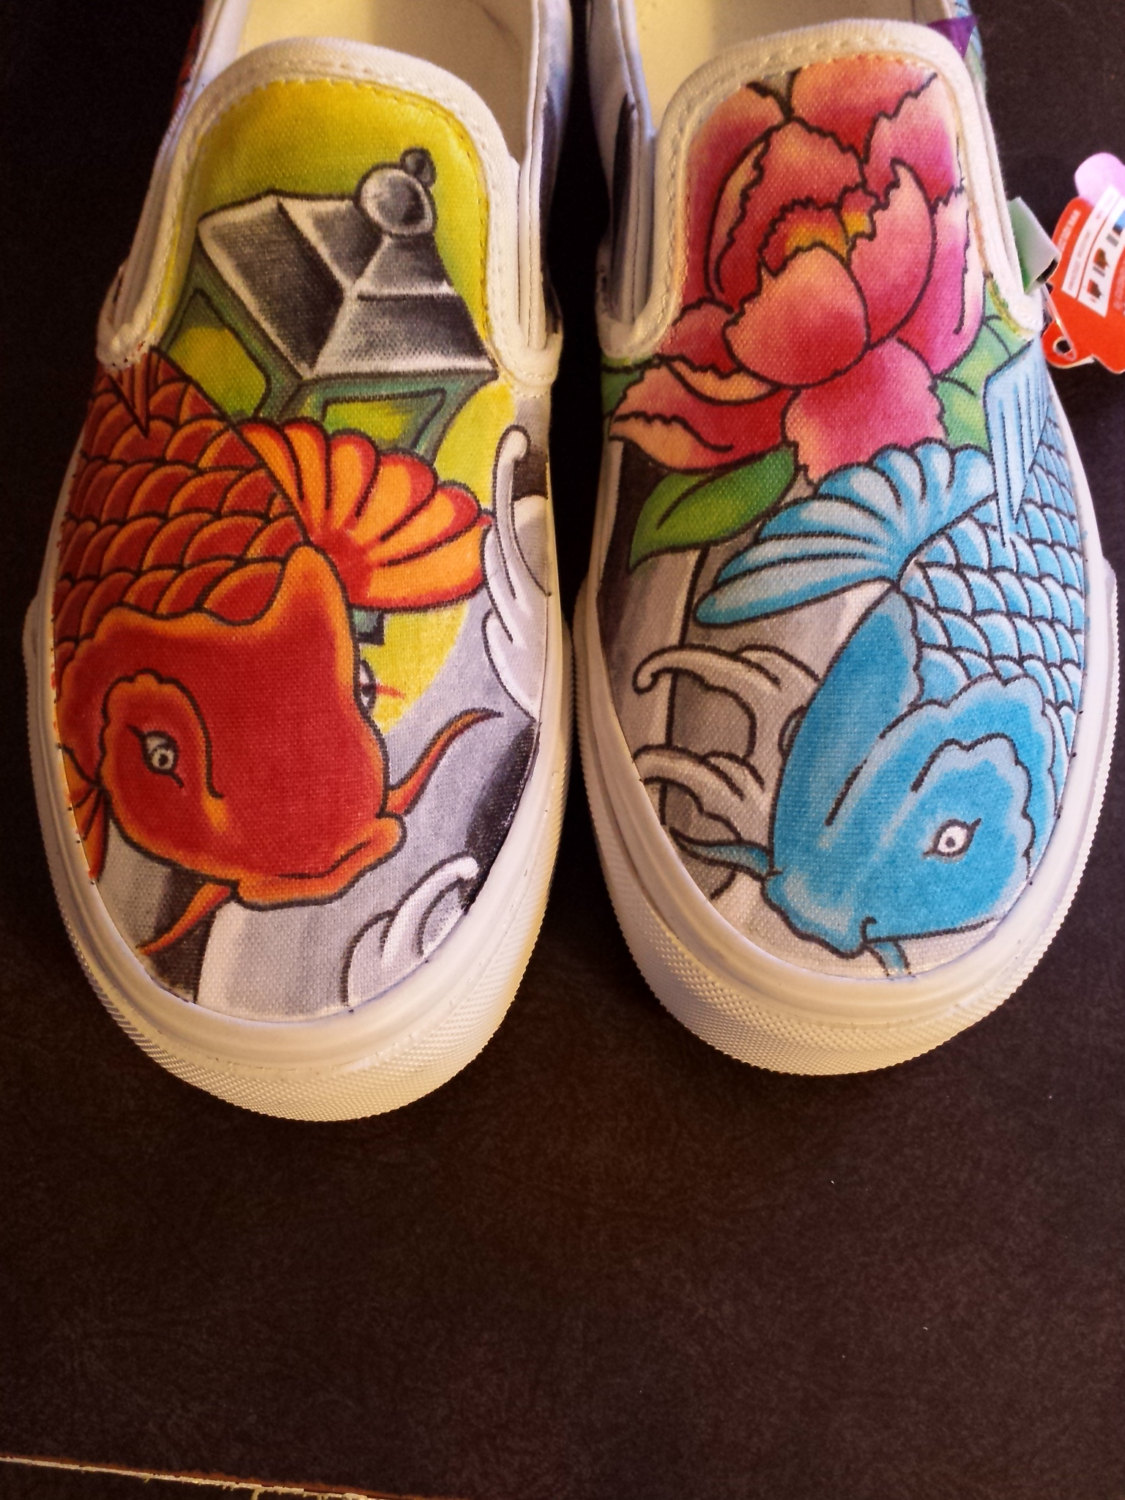 Drawn shoe japanese Like These hand fish shoes